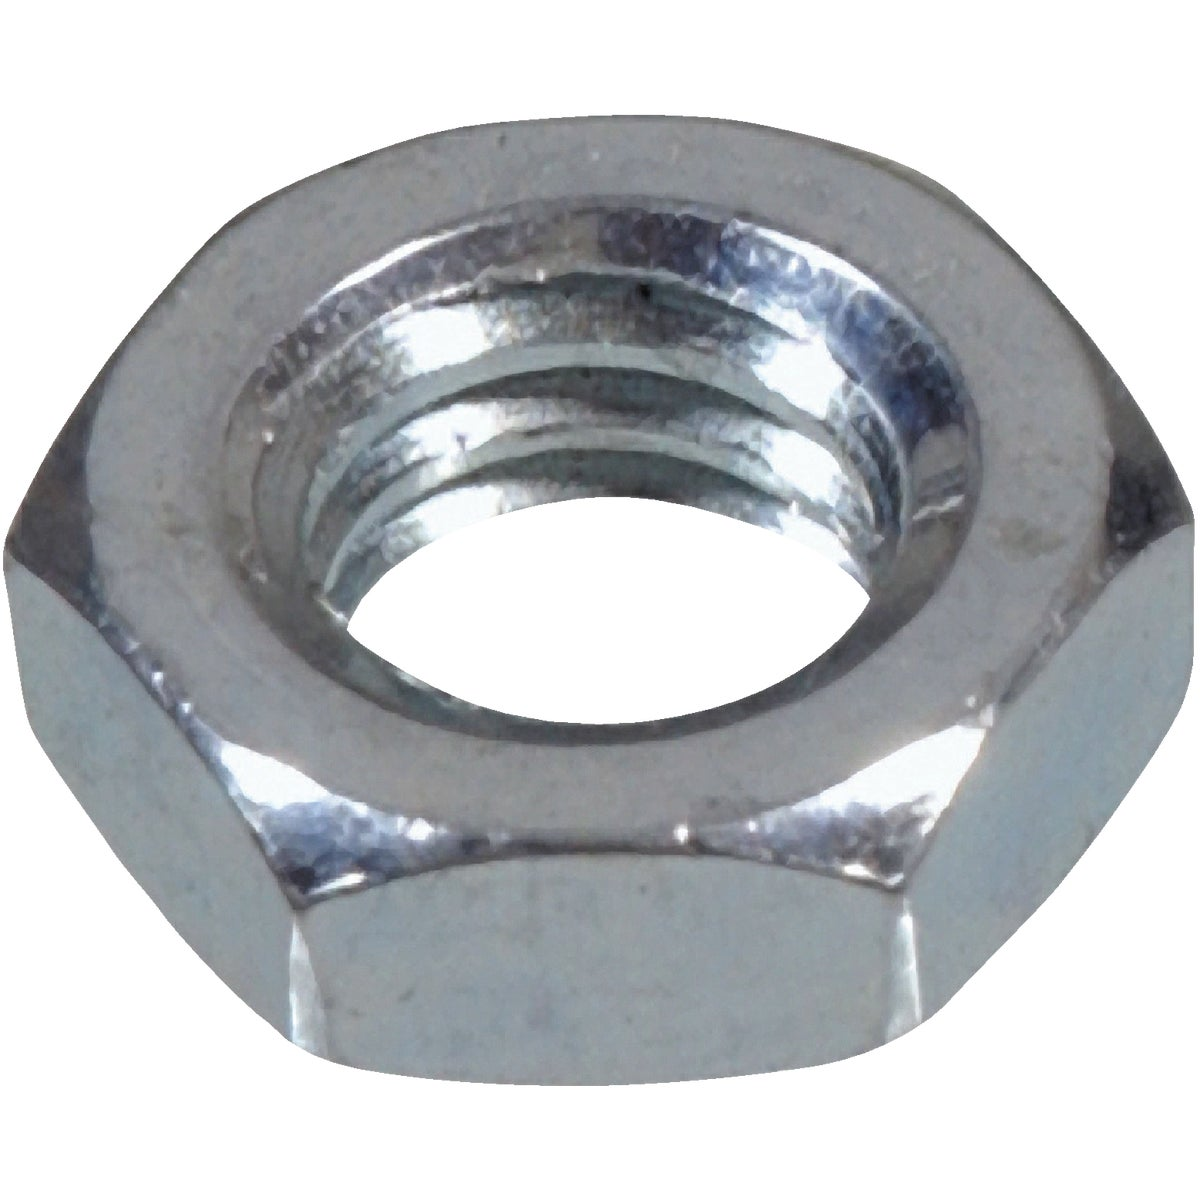 10-24 SS MACH SCREW NUT